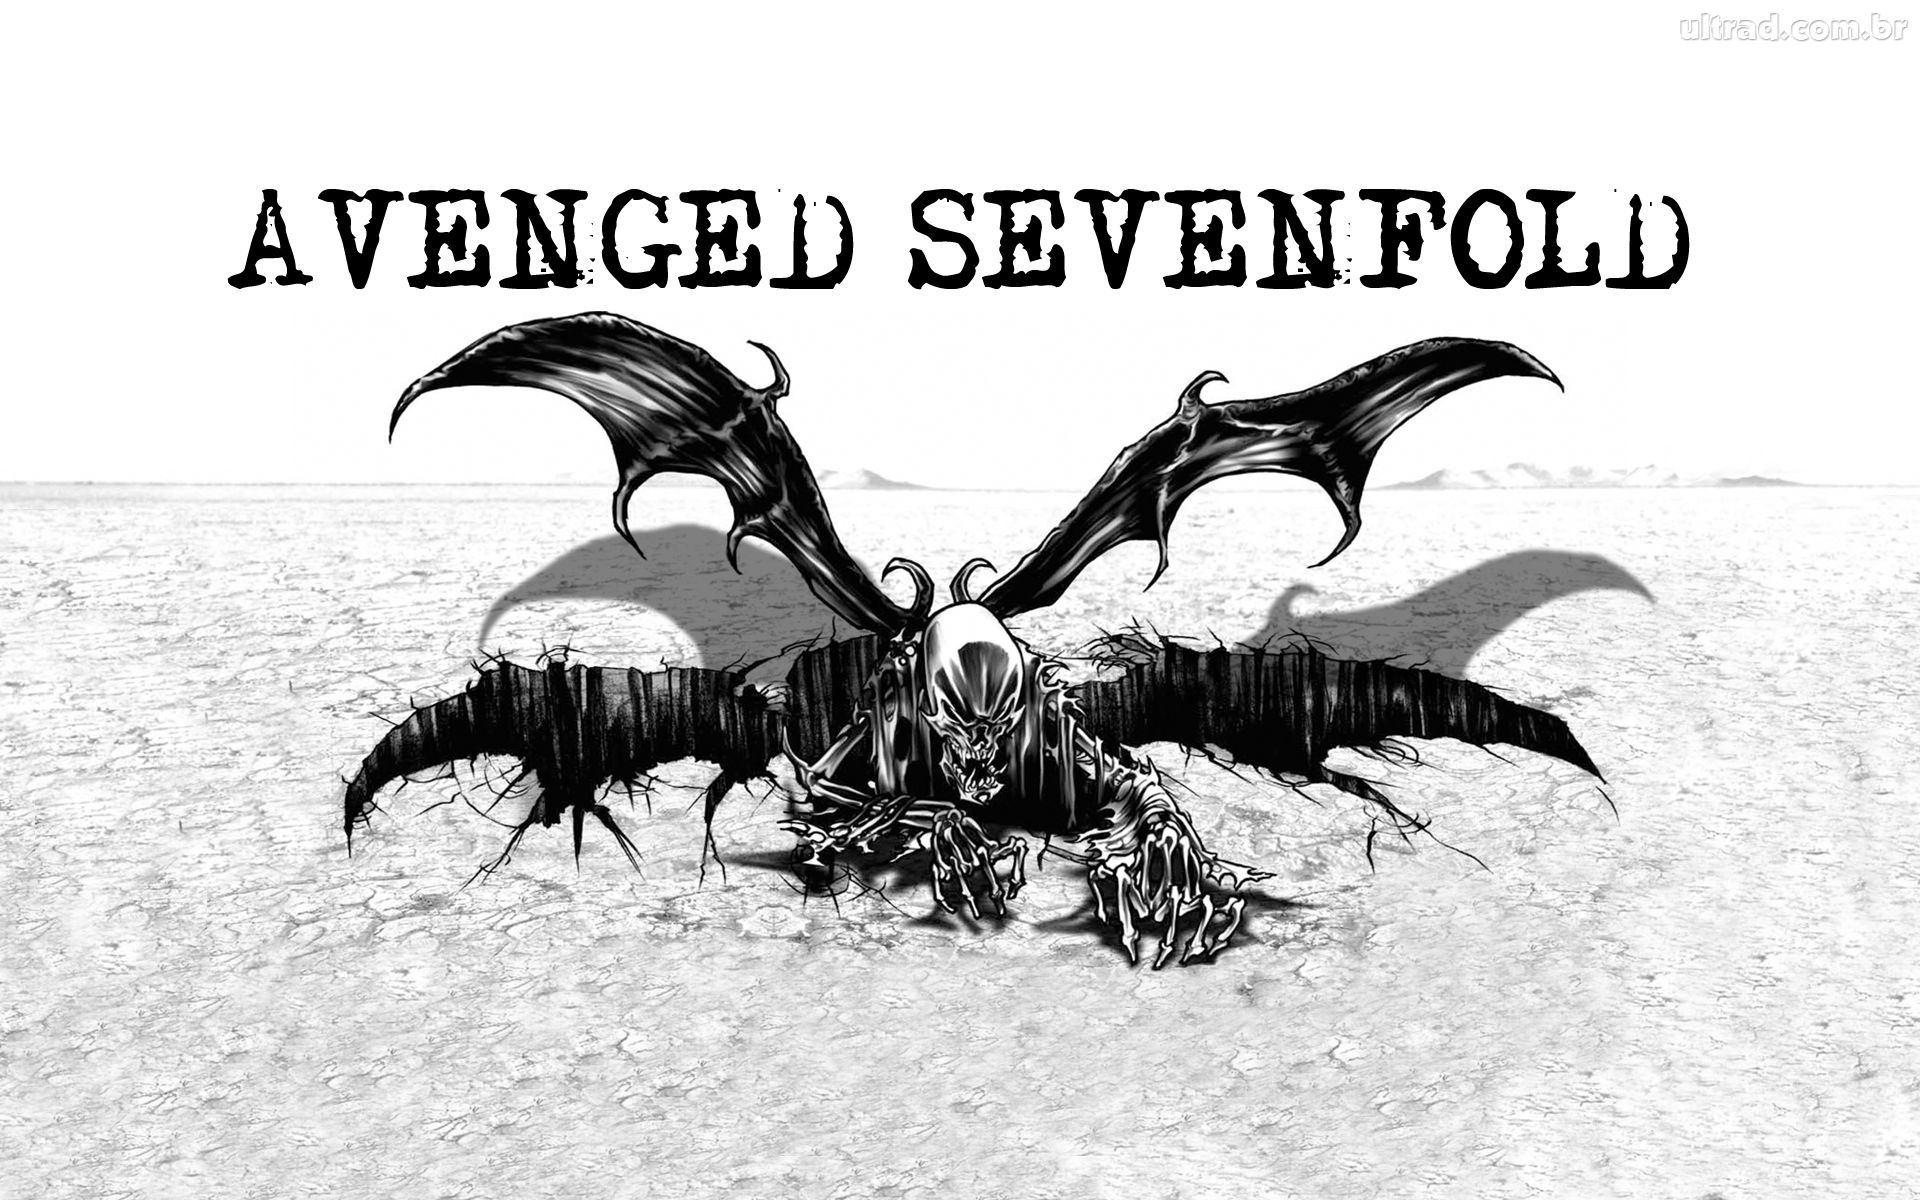 Avenged Sevenfold Afterlife Wallpaper hail to the king | Cir...